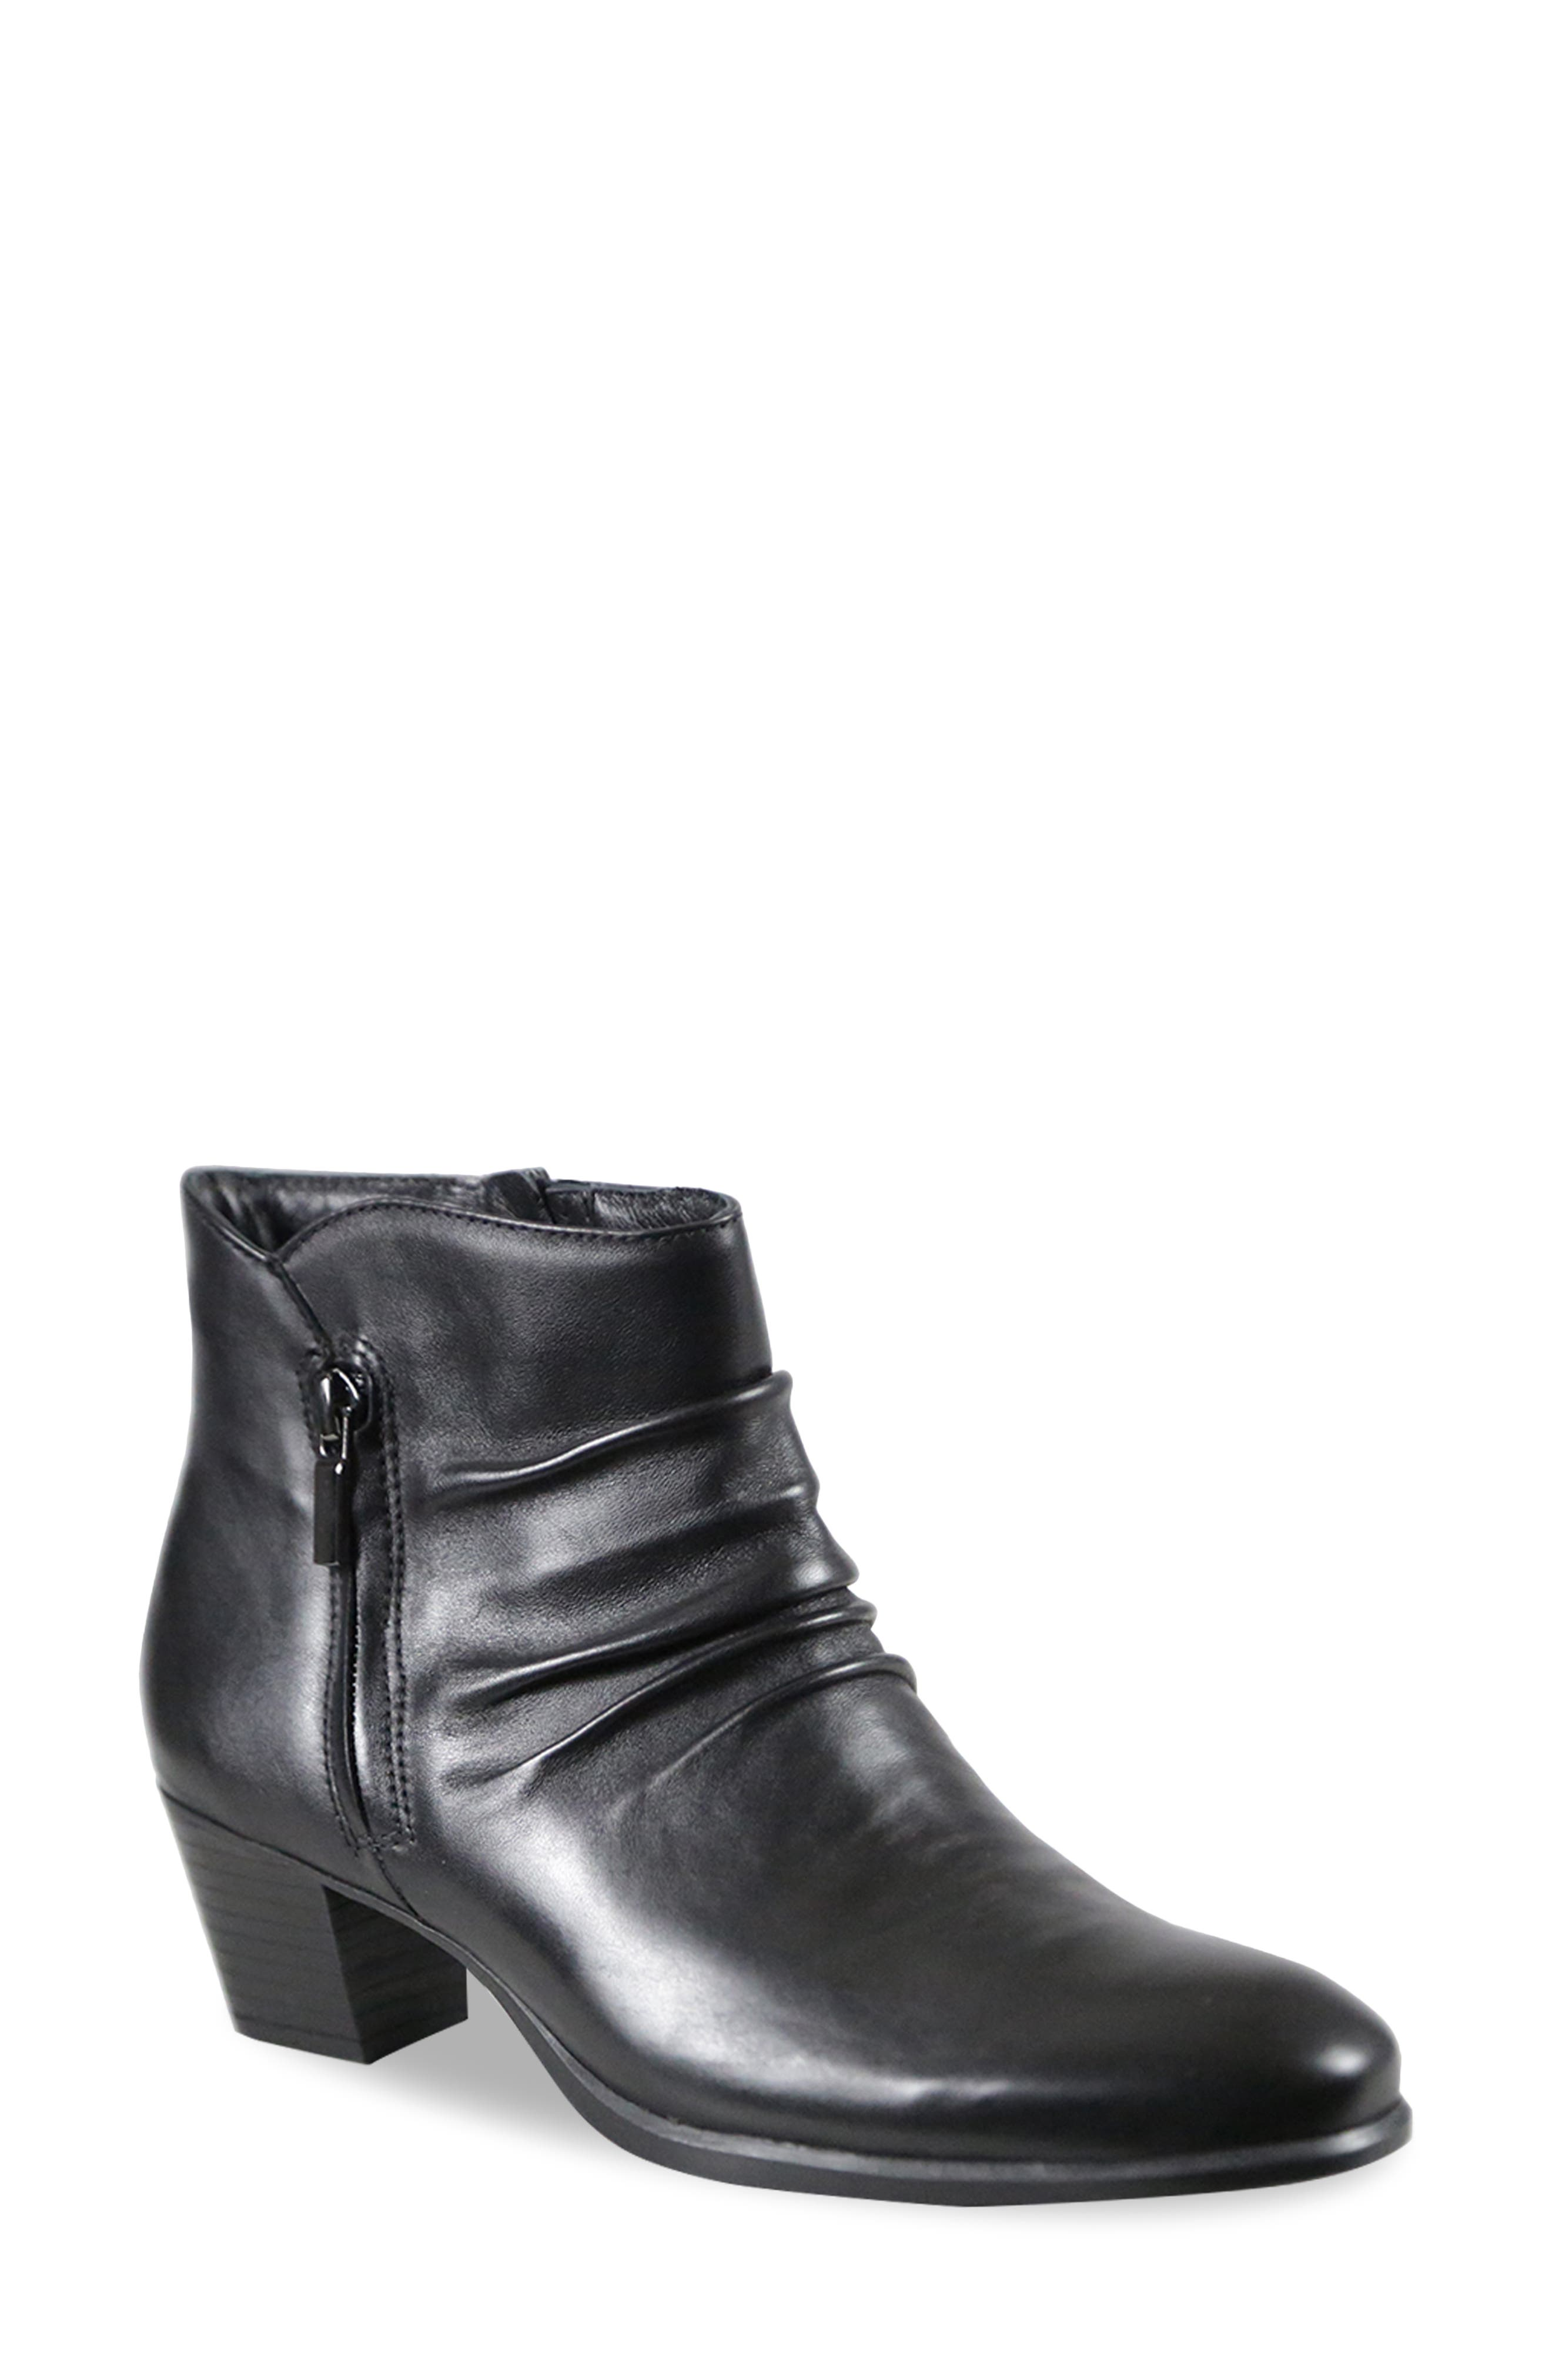 This comfort-centered bootie is styled with a slouchy silhouette and fitted with a cushy, arch-supporting footbed for support with every step. Style Name: Munro Elliot Bootie (Women). Style Number: 6066142. Available in stores.